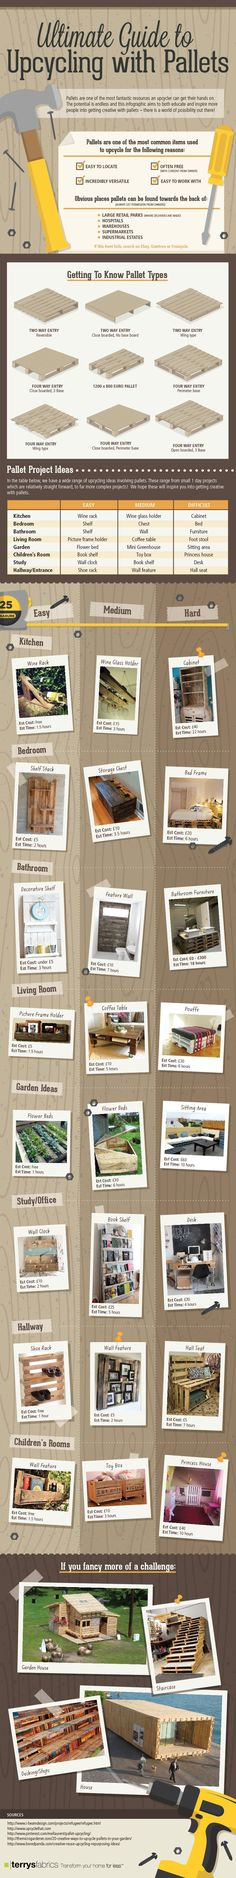 Ultimate Guide to Upcycling with Pallets - Infograph featured on www.sasinteriors.net